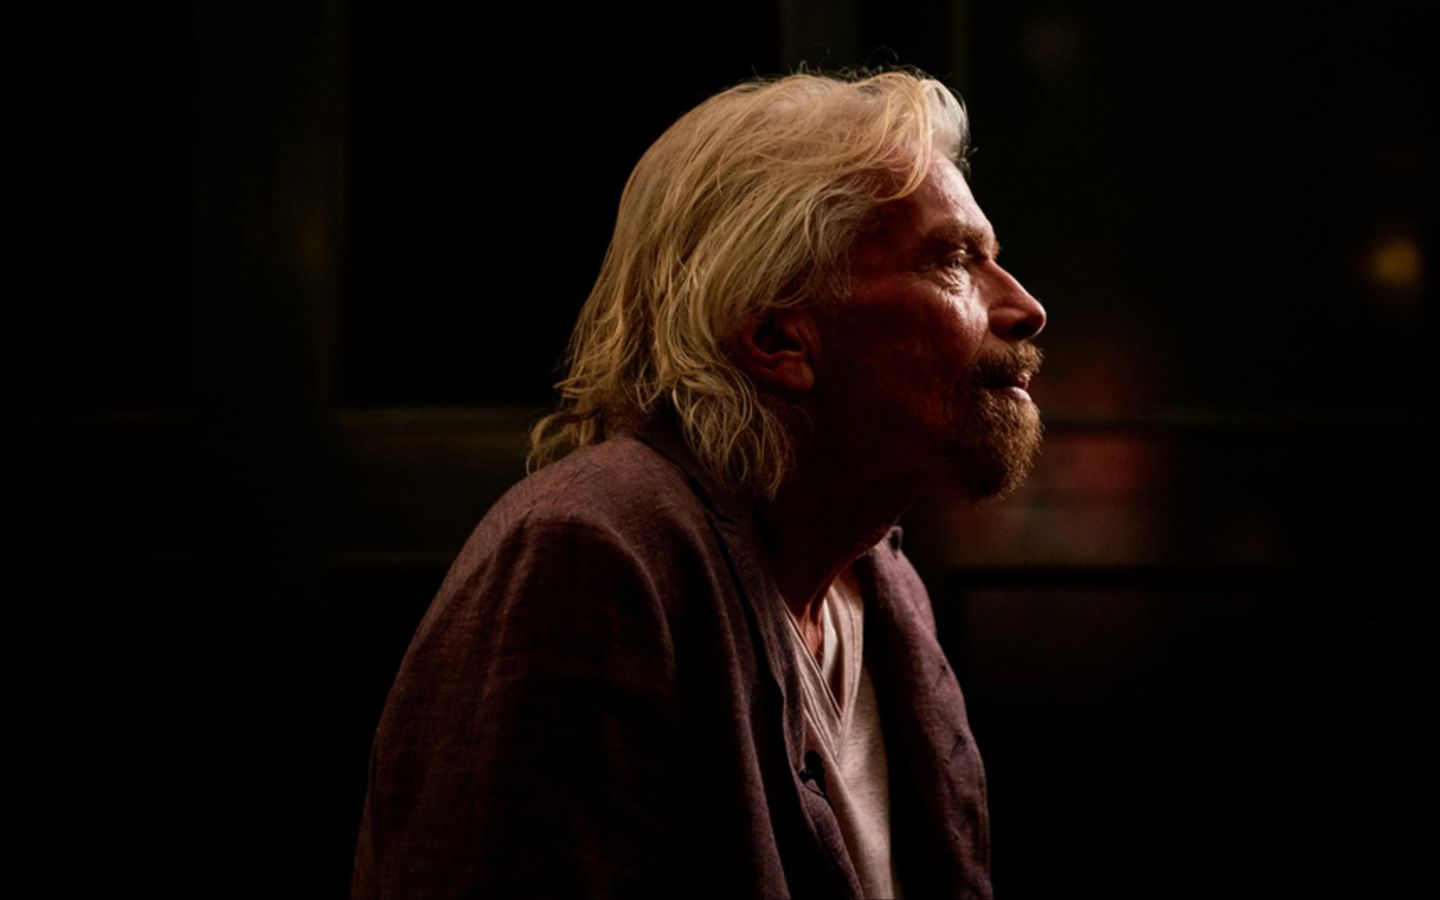 Richard Branson looking serious